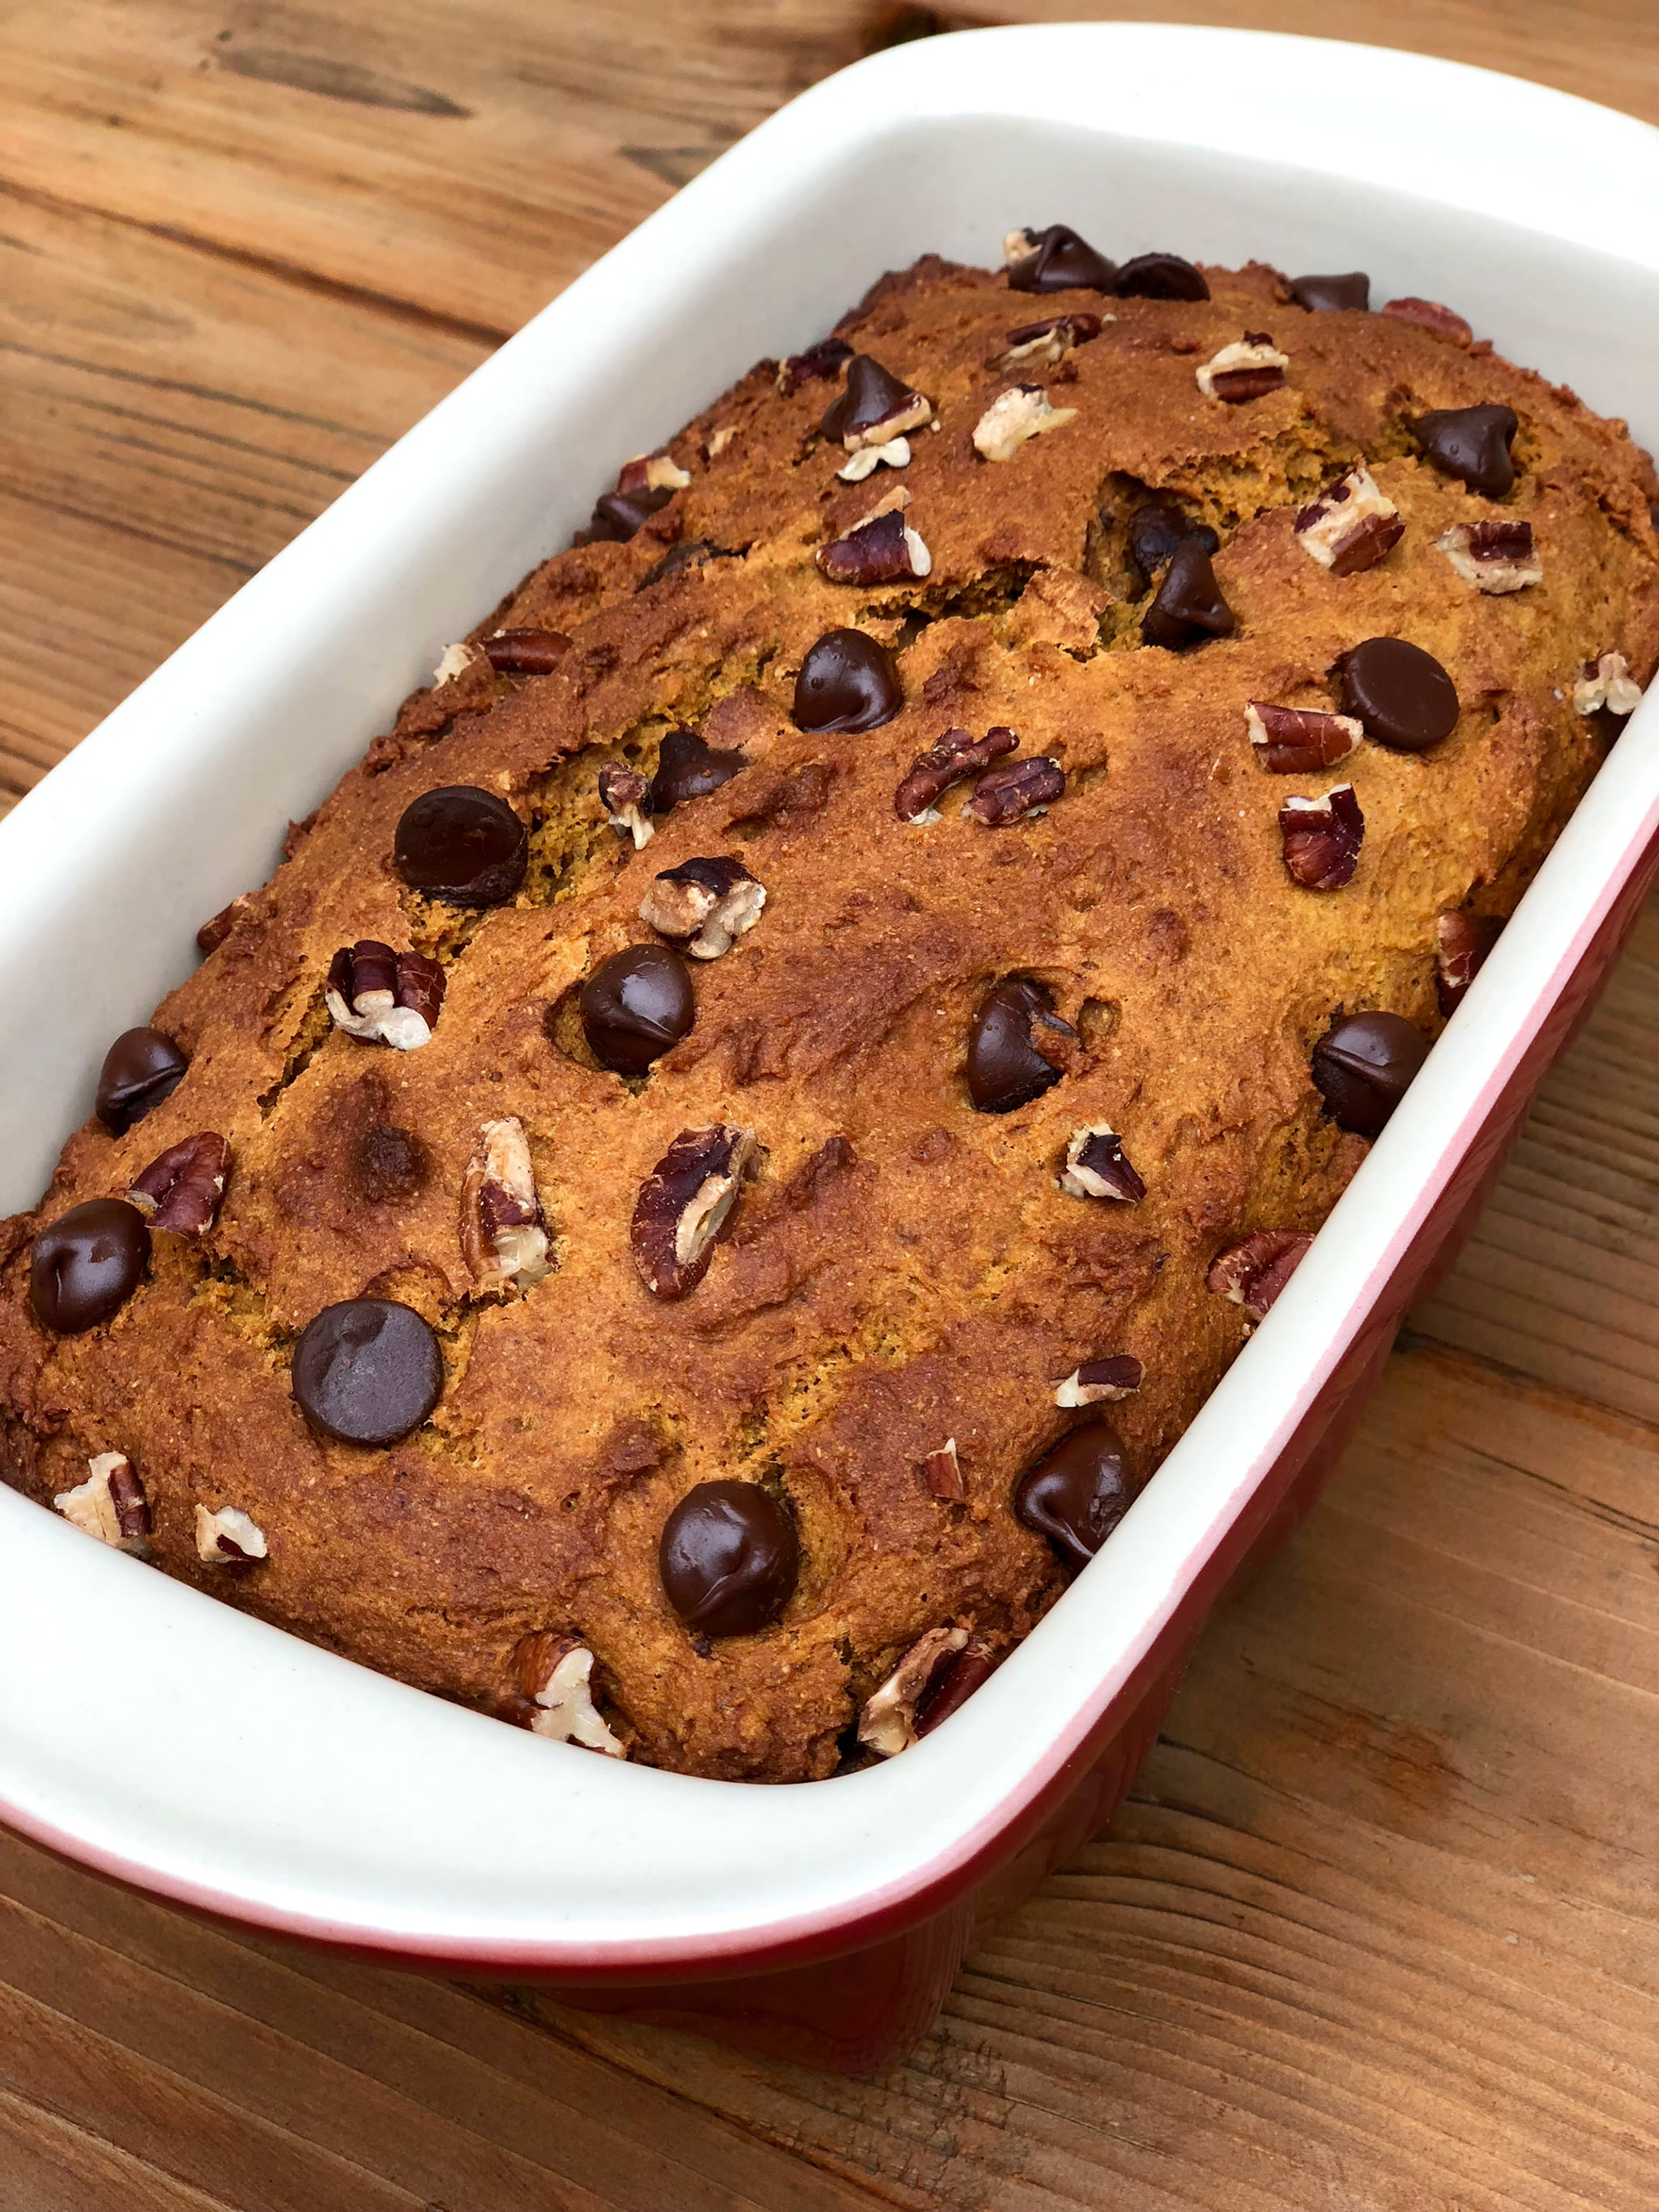 Skip the High-Cal PSL, and Get Your Fall Fix With Protein-Packed Chocolate Chip Pumpkin Bread